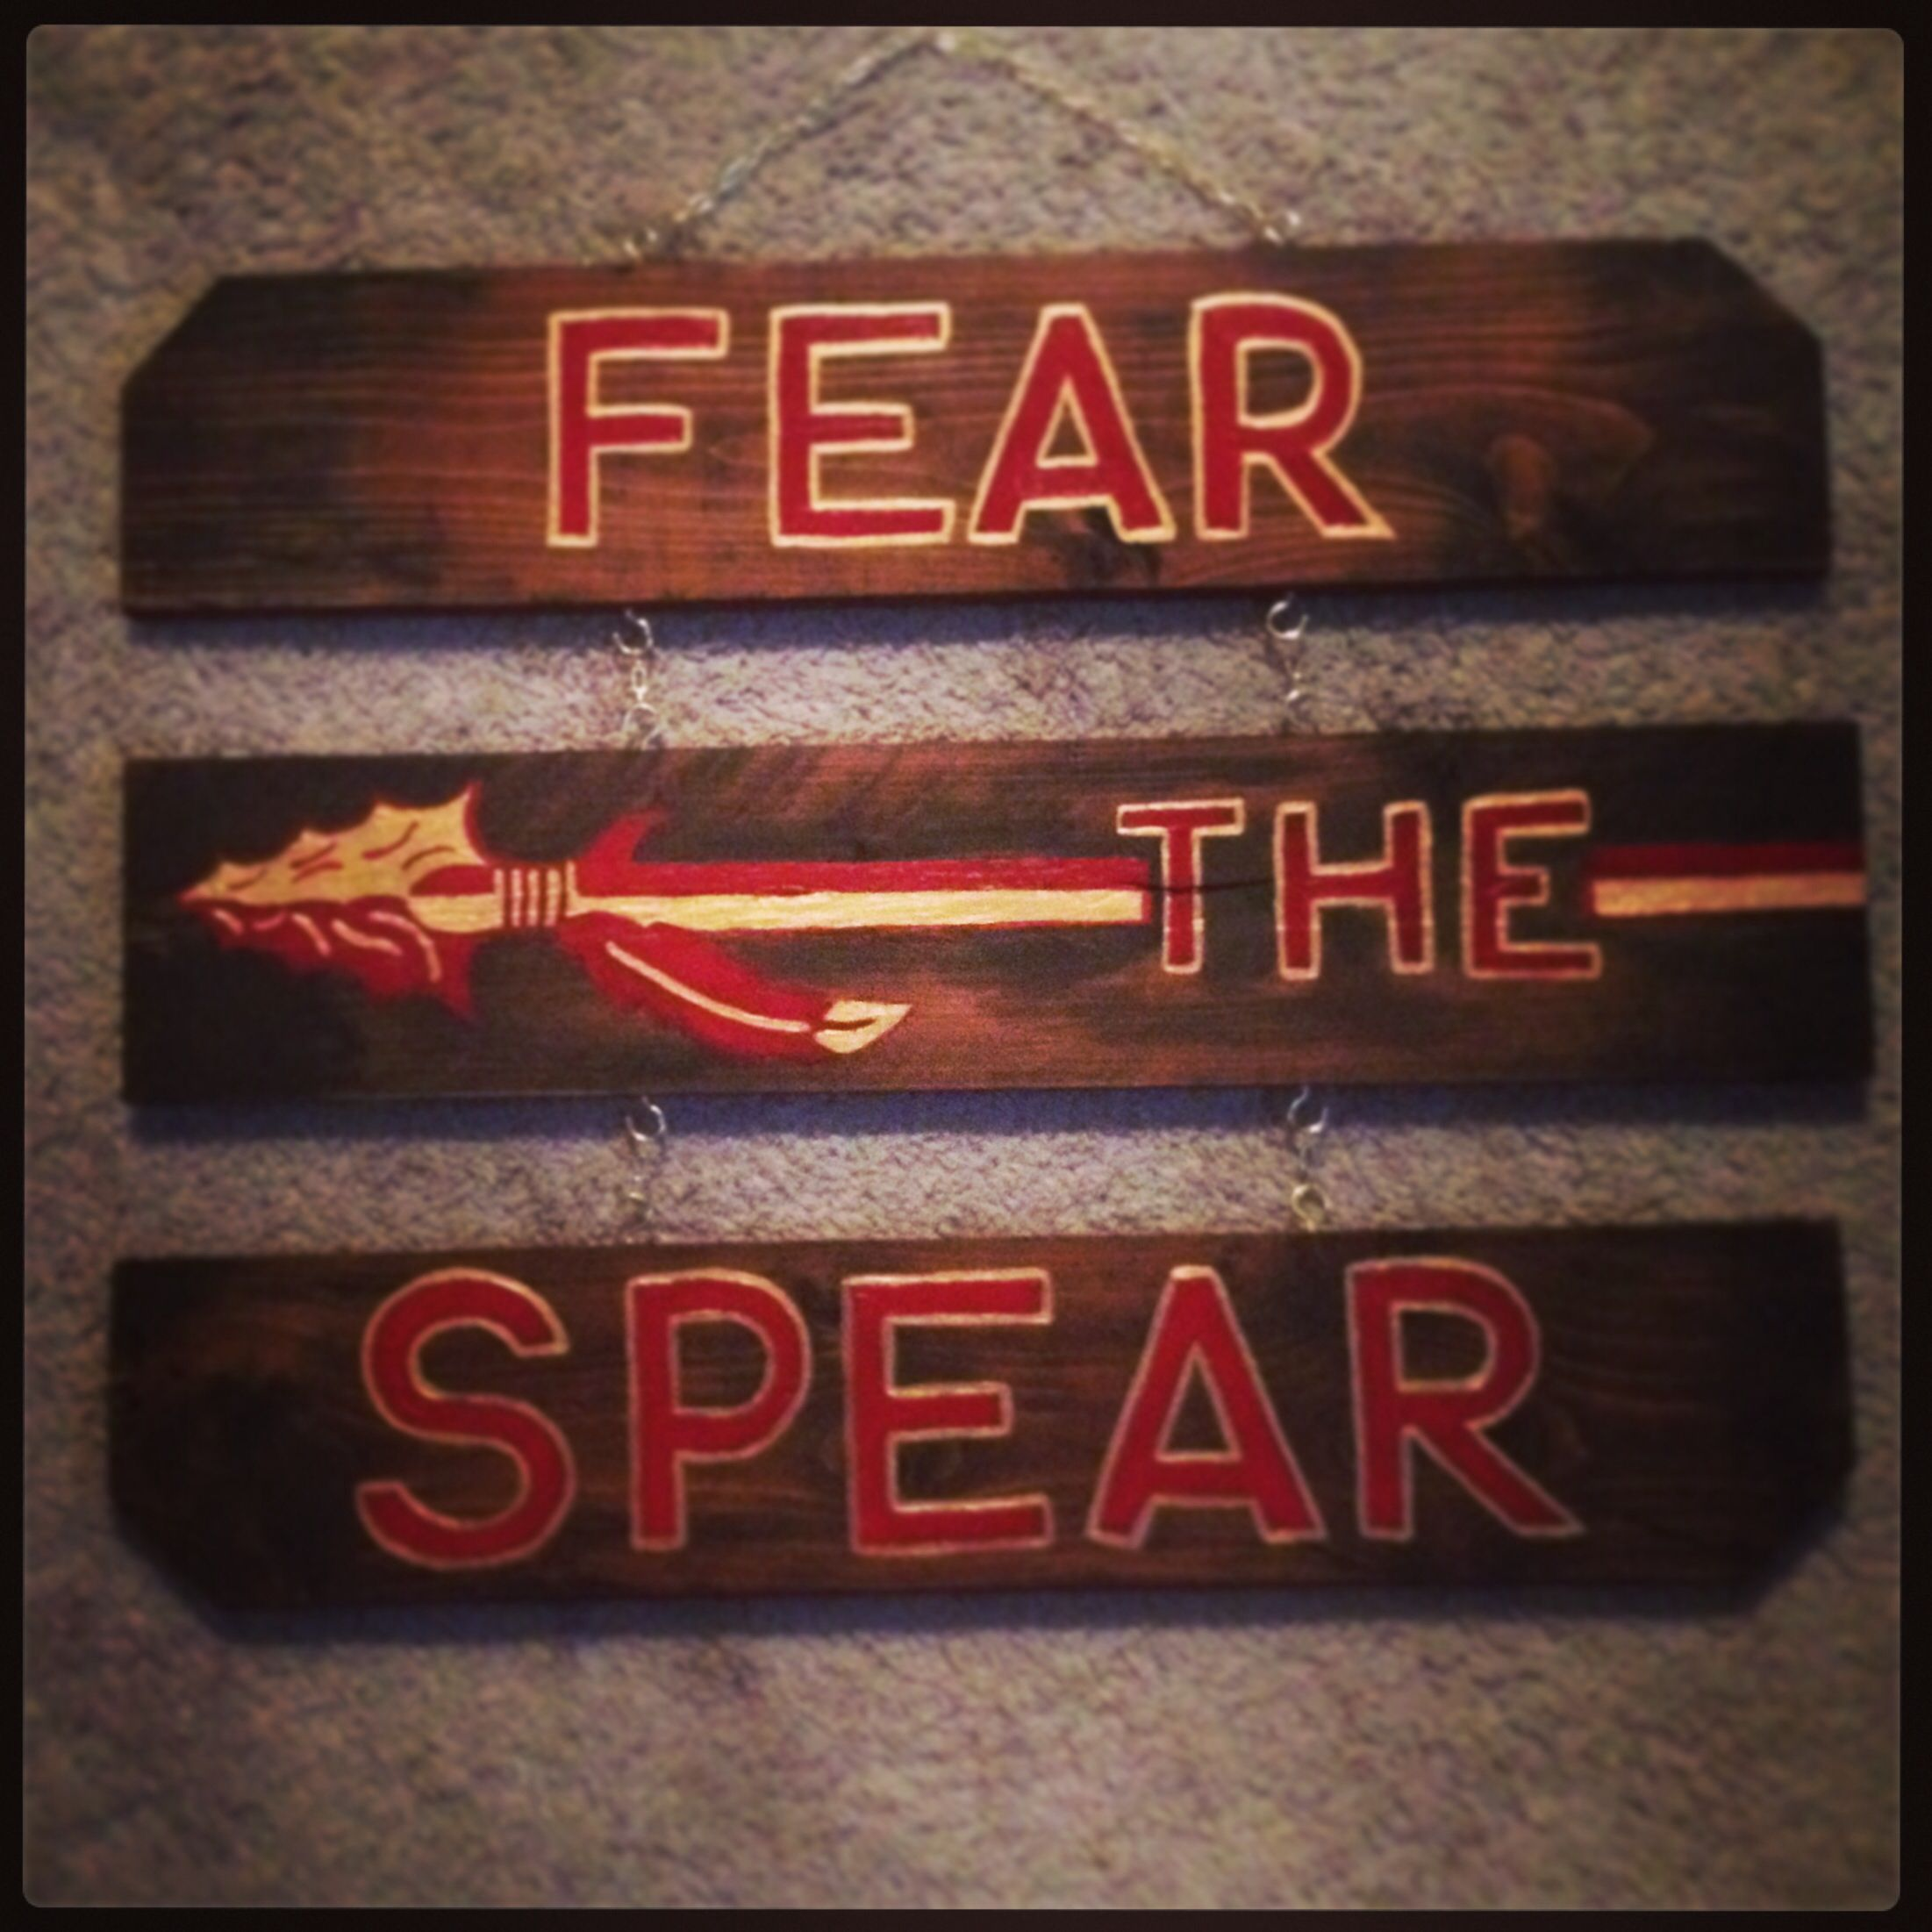 fear the spear florida state university pallet art refinished florida state university pallet art refinished wood